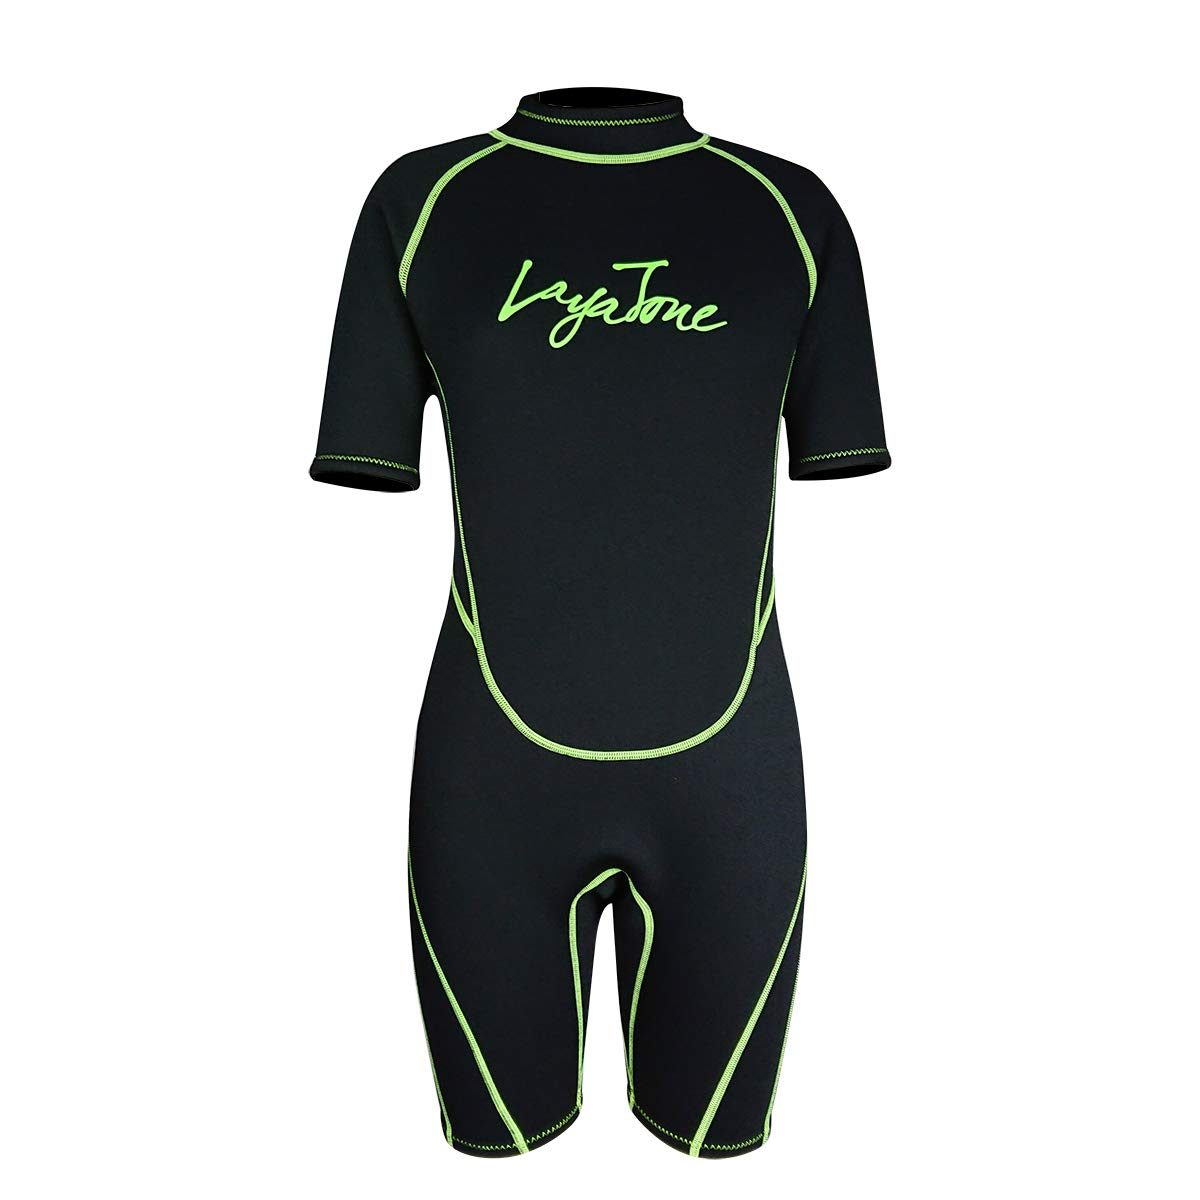 Layatone 3mm Shorty Wetsuit Adults Scuba Diving Suit Men Women Neoprene Wetsuits Thermal One Piece Swimsuit Surf Suit Shorty Suits (Black,L) by Layatone